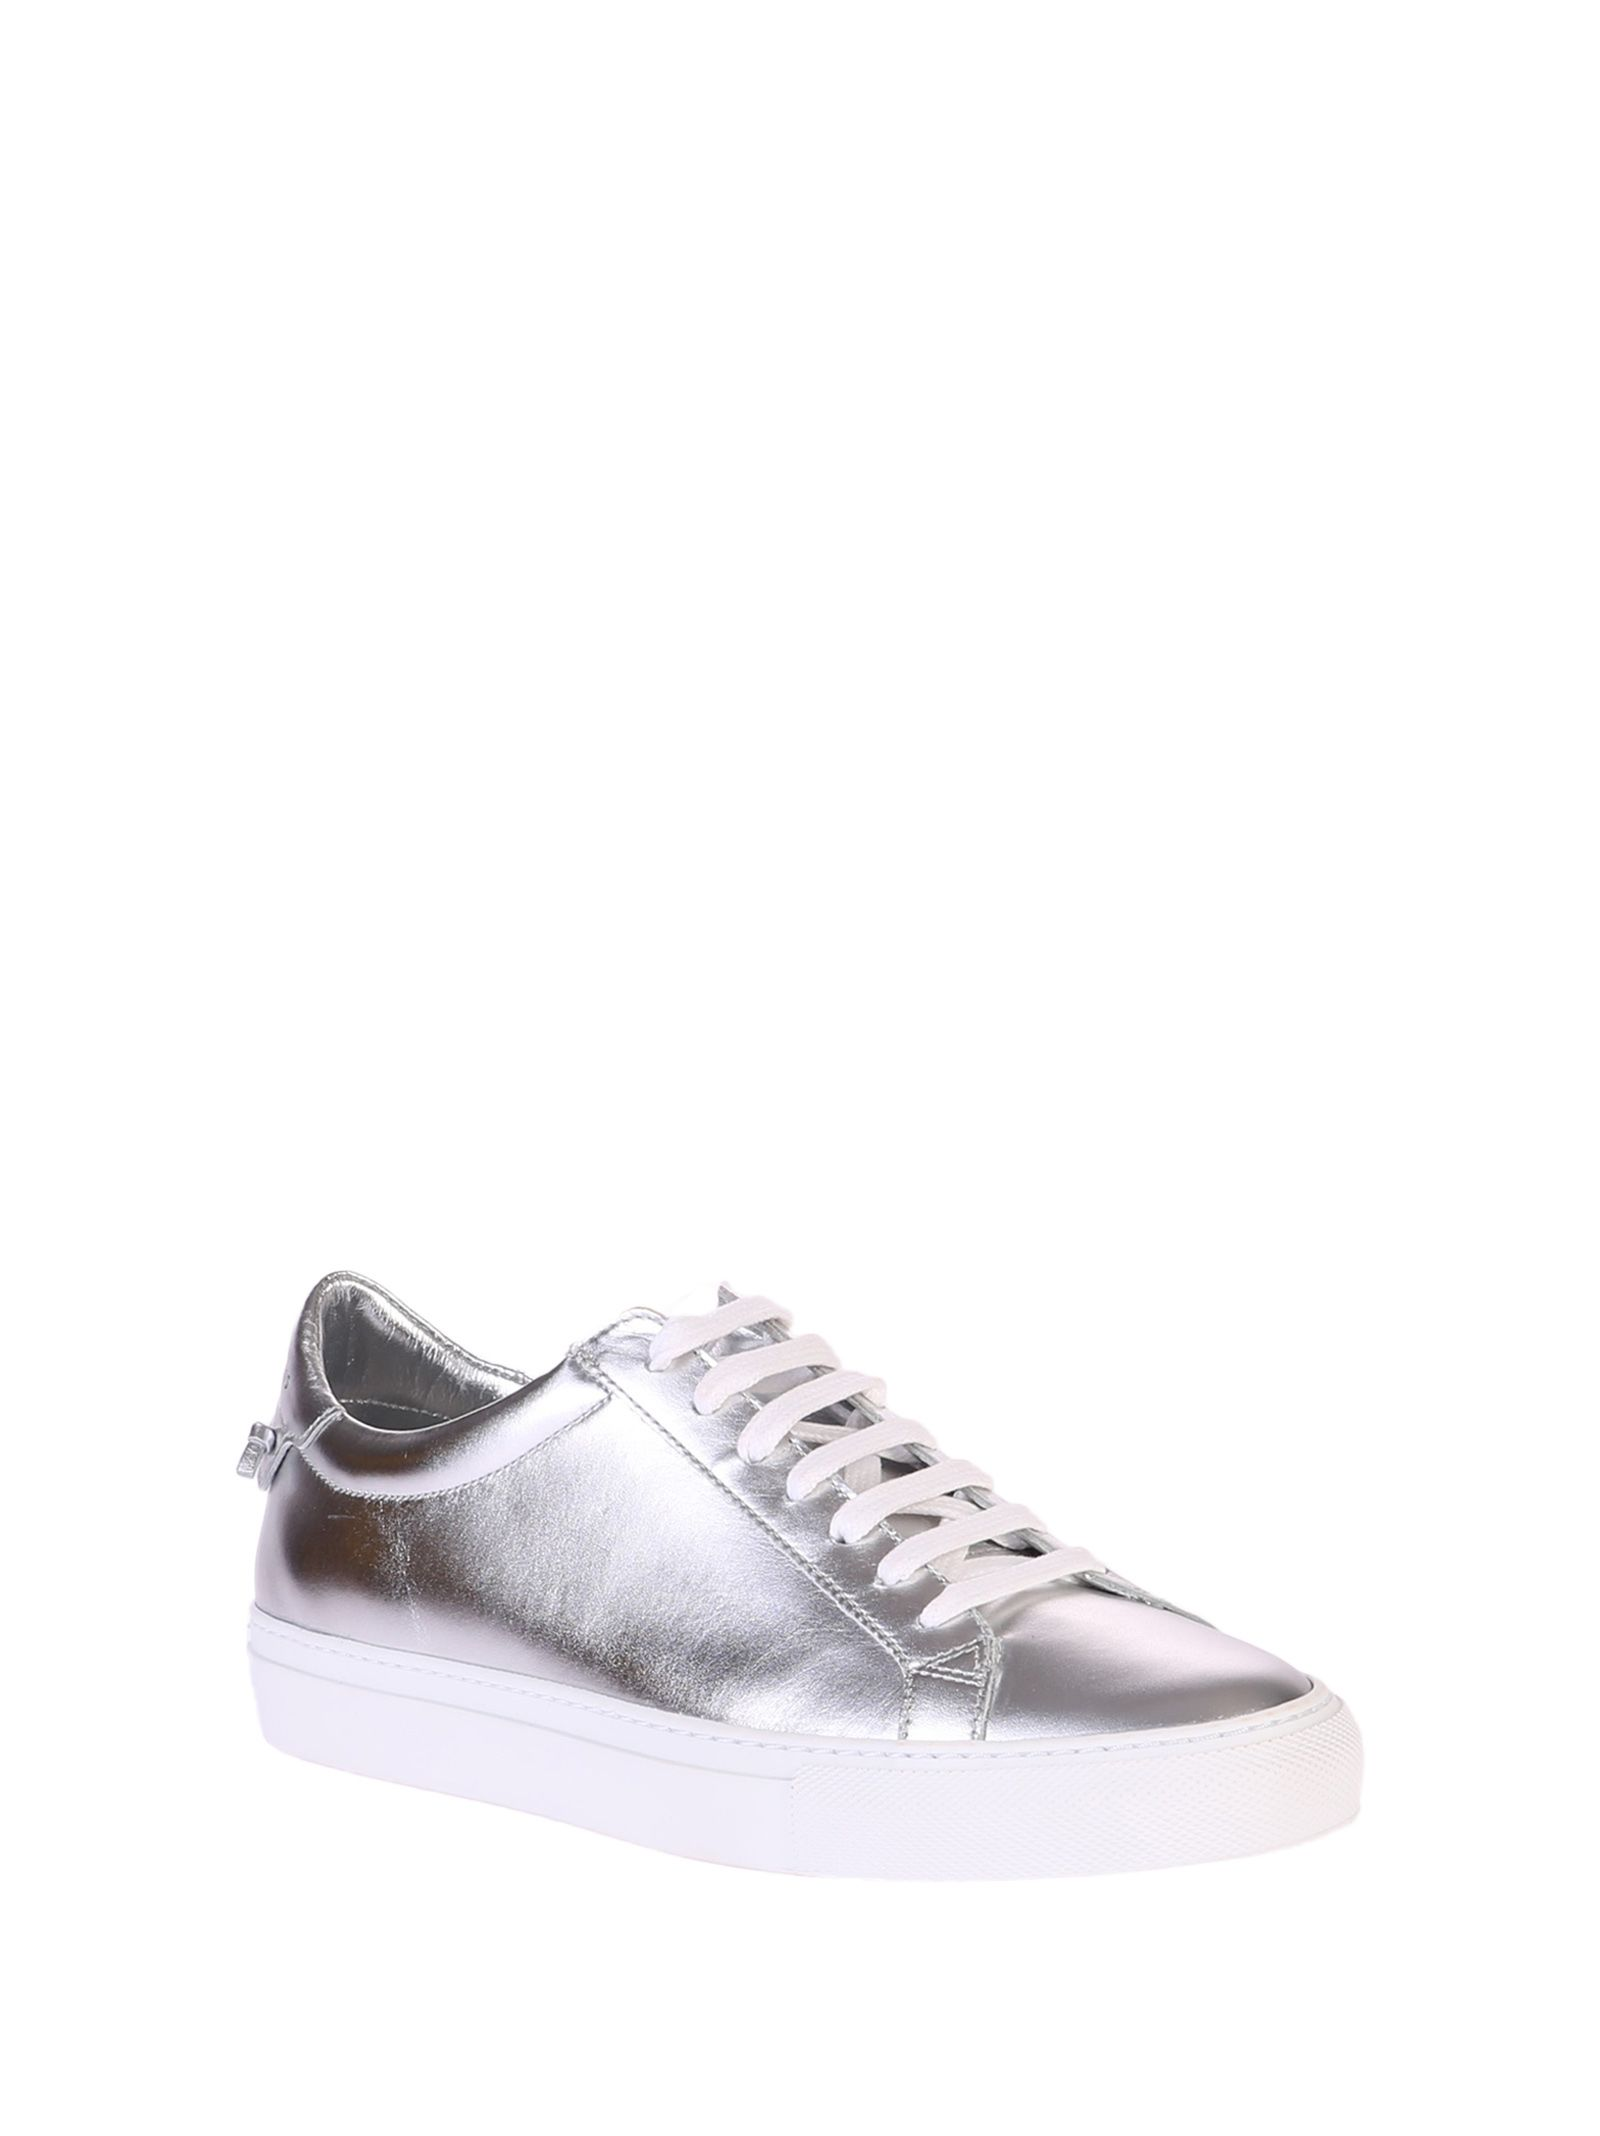 Givenchy Metallized Silver Sneakers Clearance Best Cheap 2018 Unisex Cheap Sale Fashion Style Buy Cheap Latest ObaLtSi